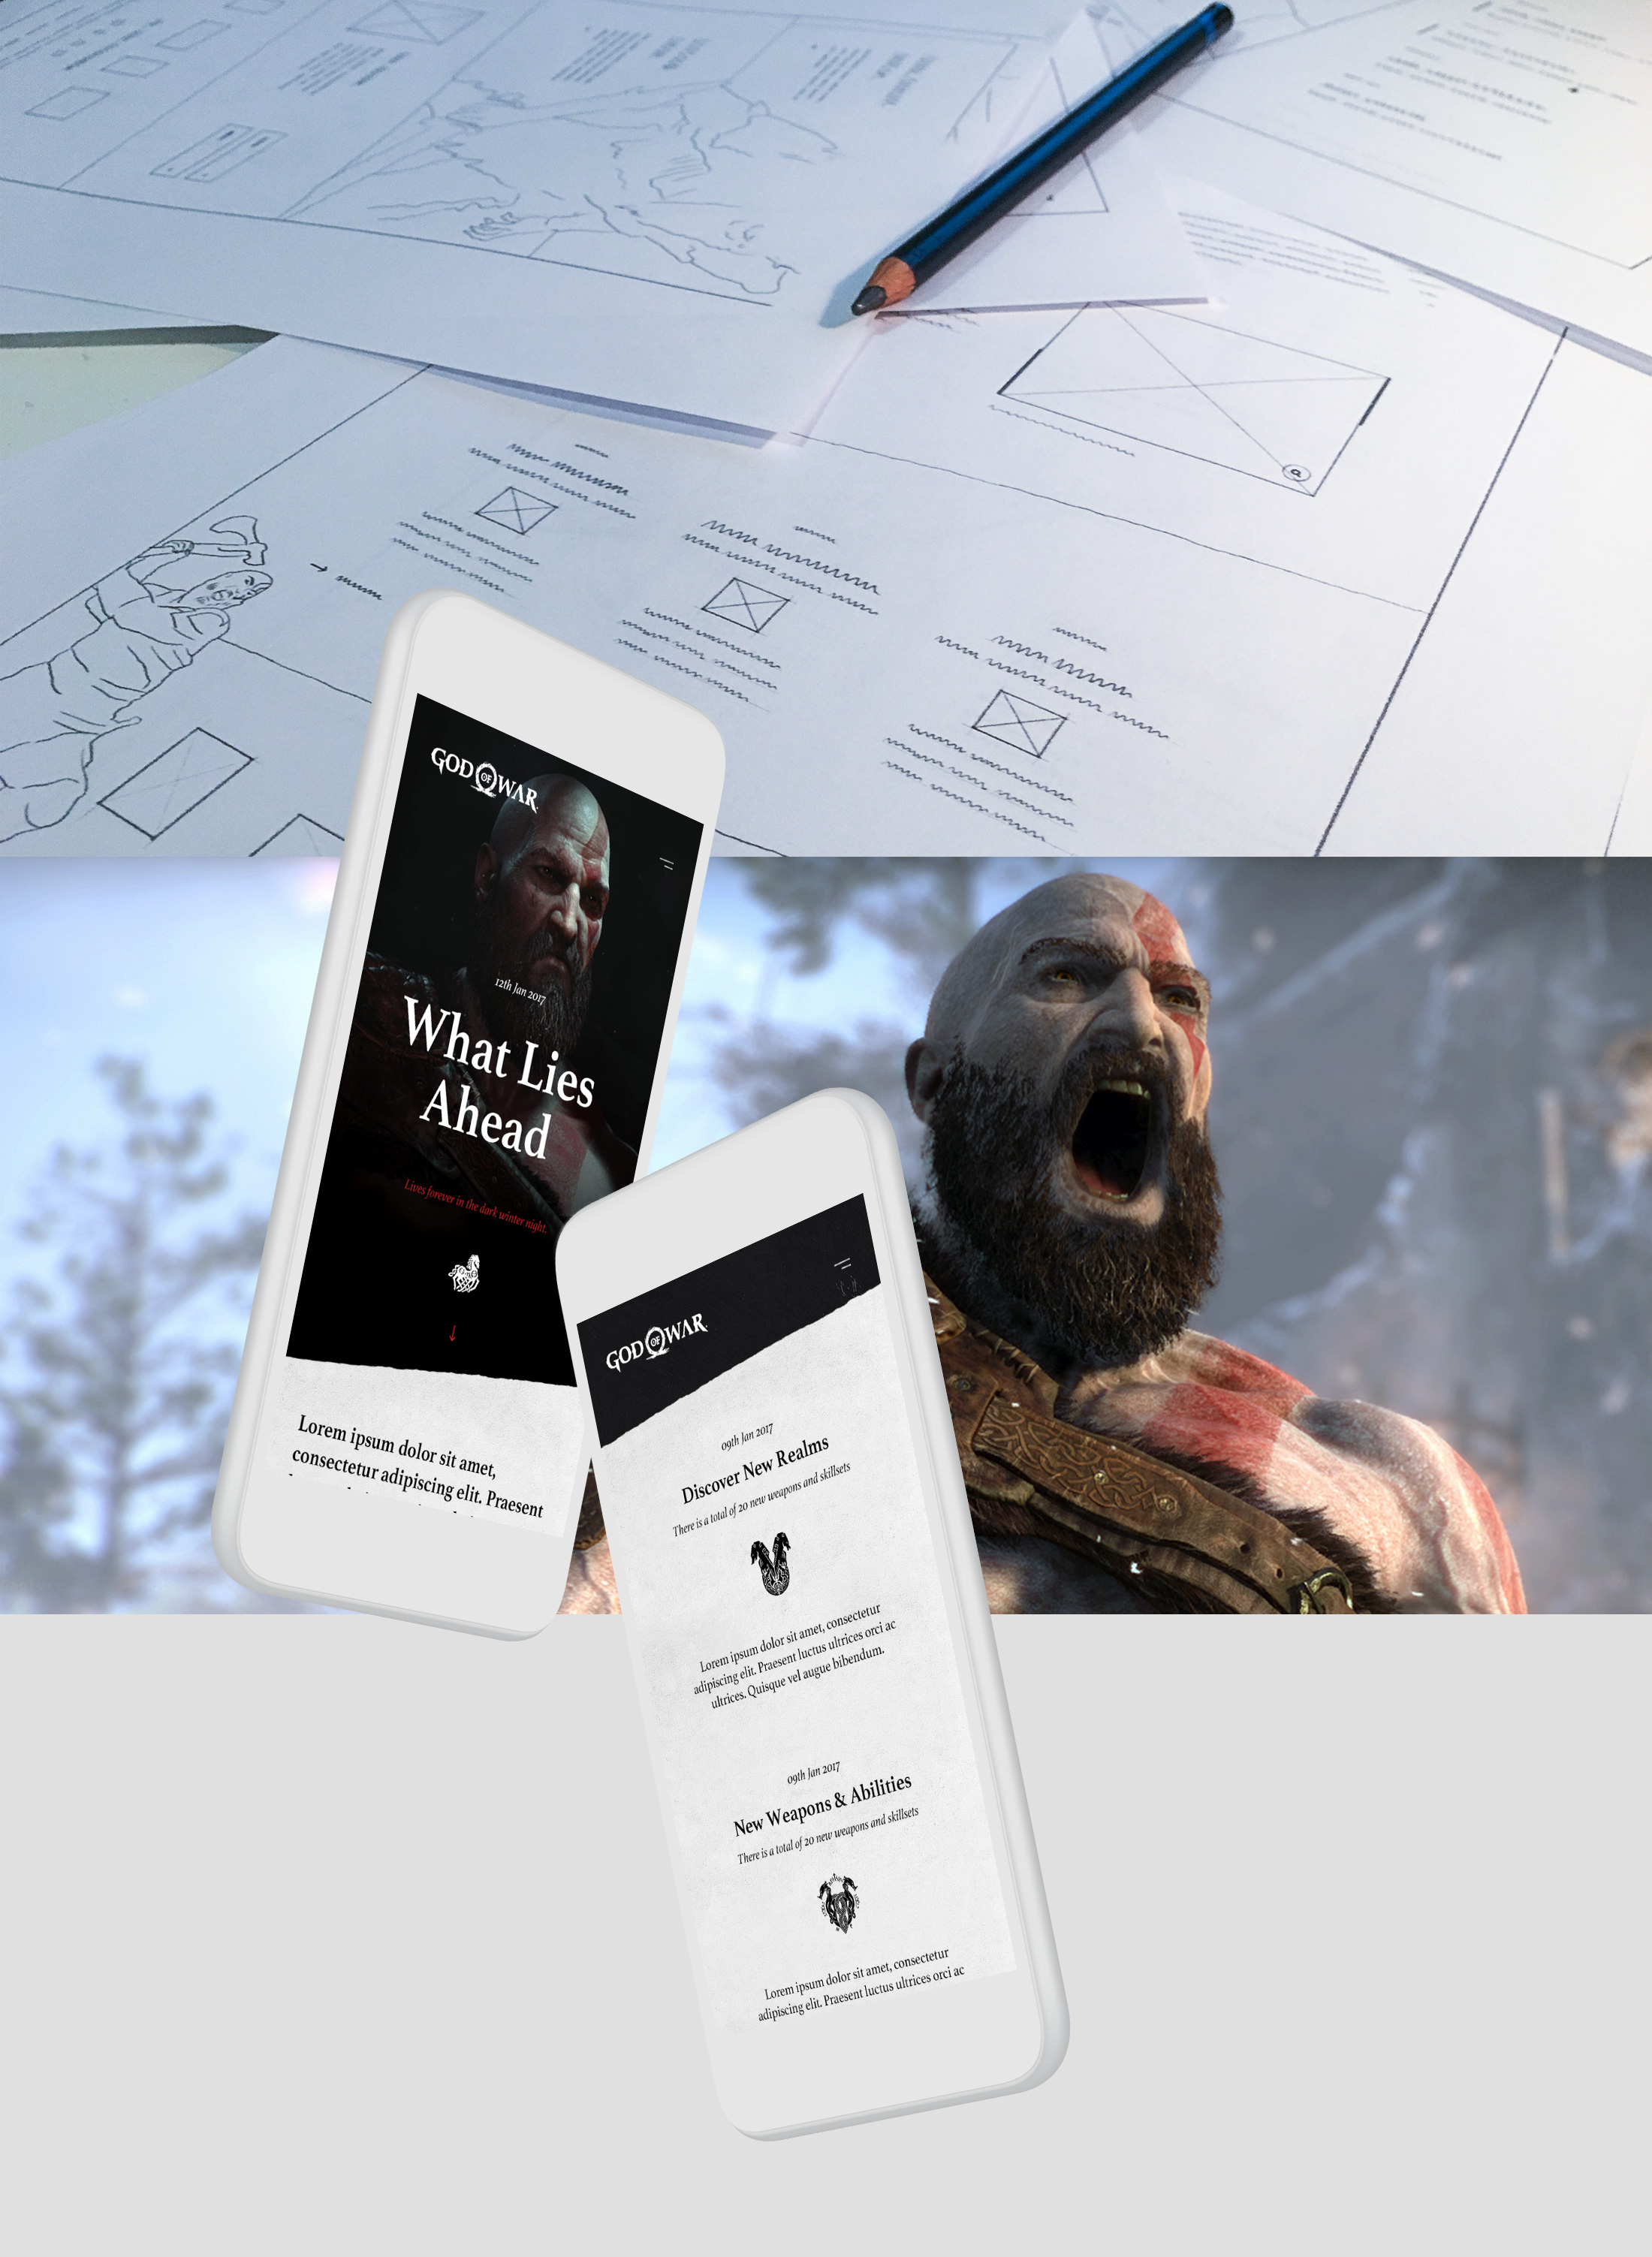 Web Design & UI/UX for the God of War 4 game